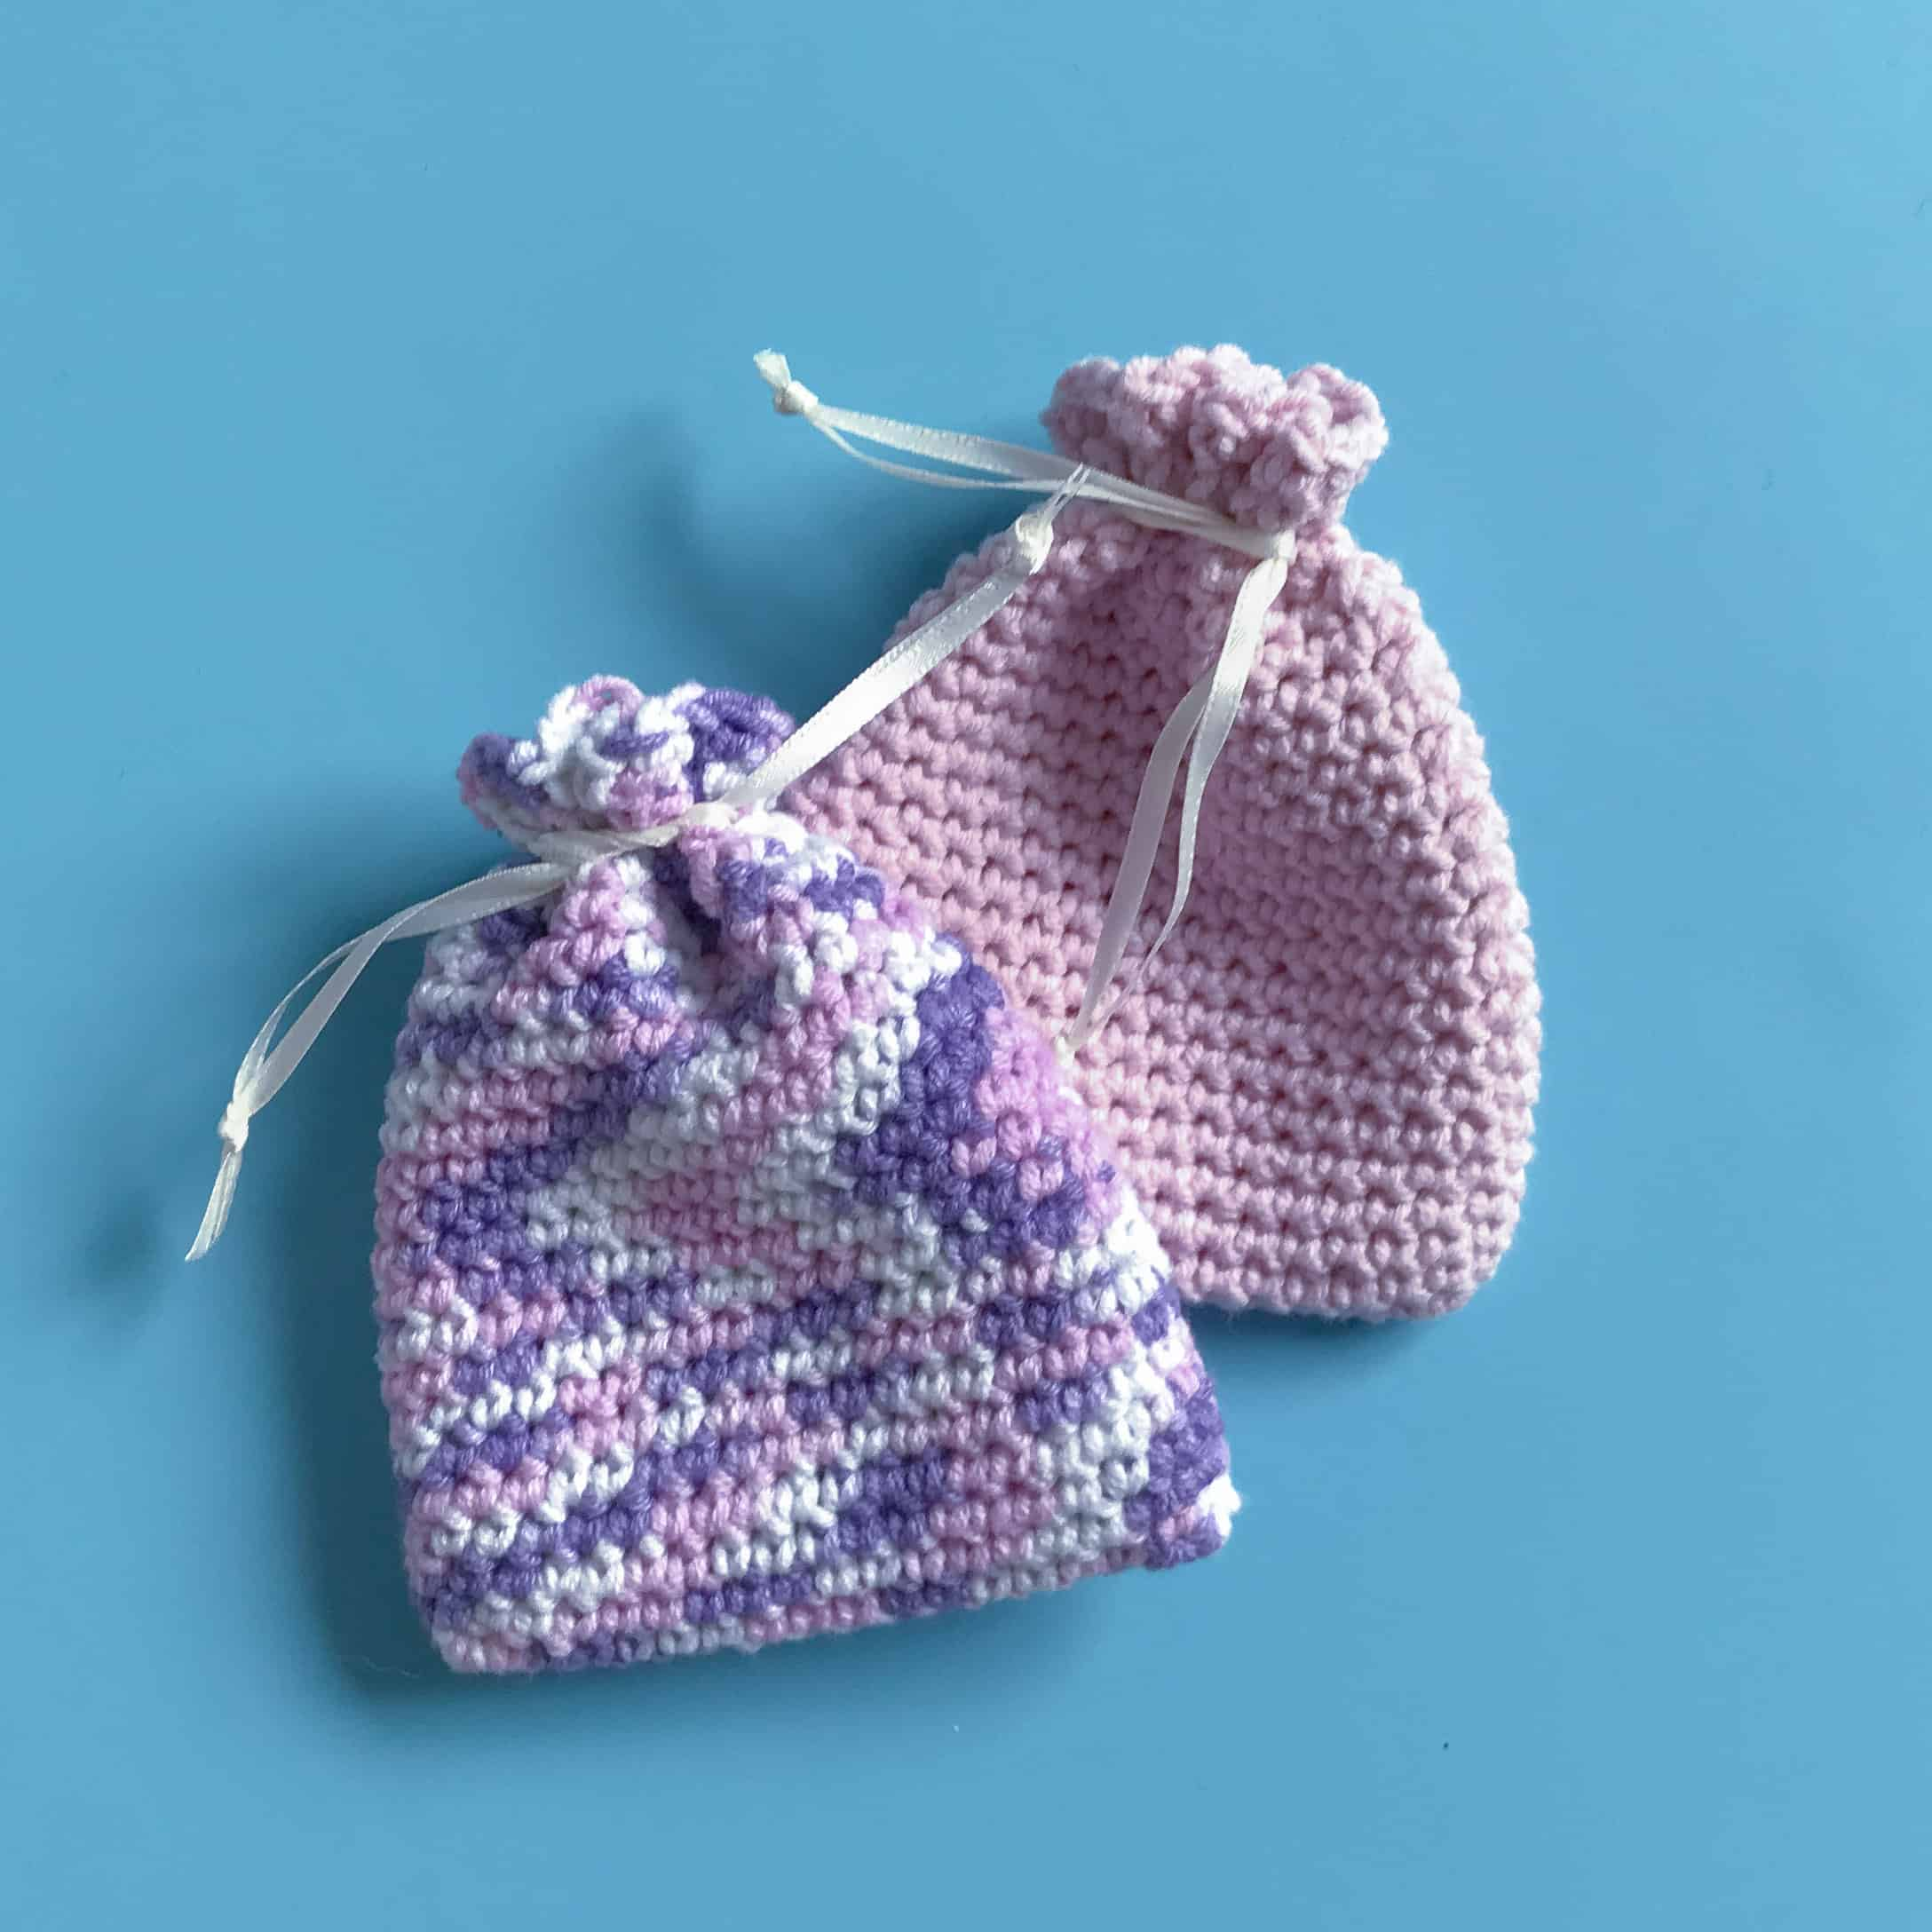 2 Finished Crochet Favour Bags in pink and purple on blue background